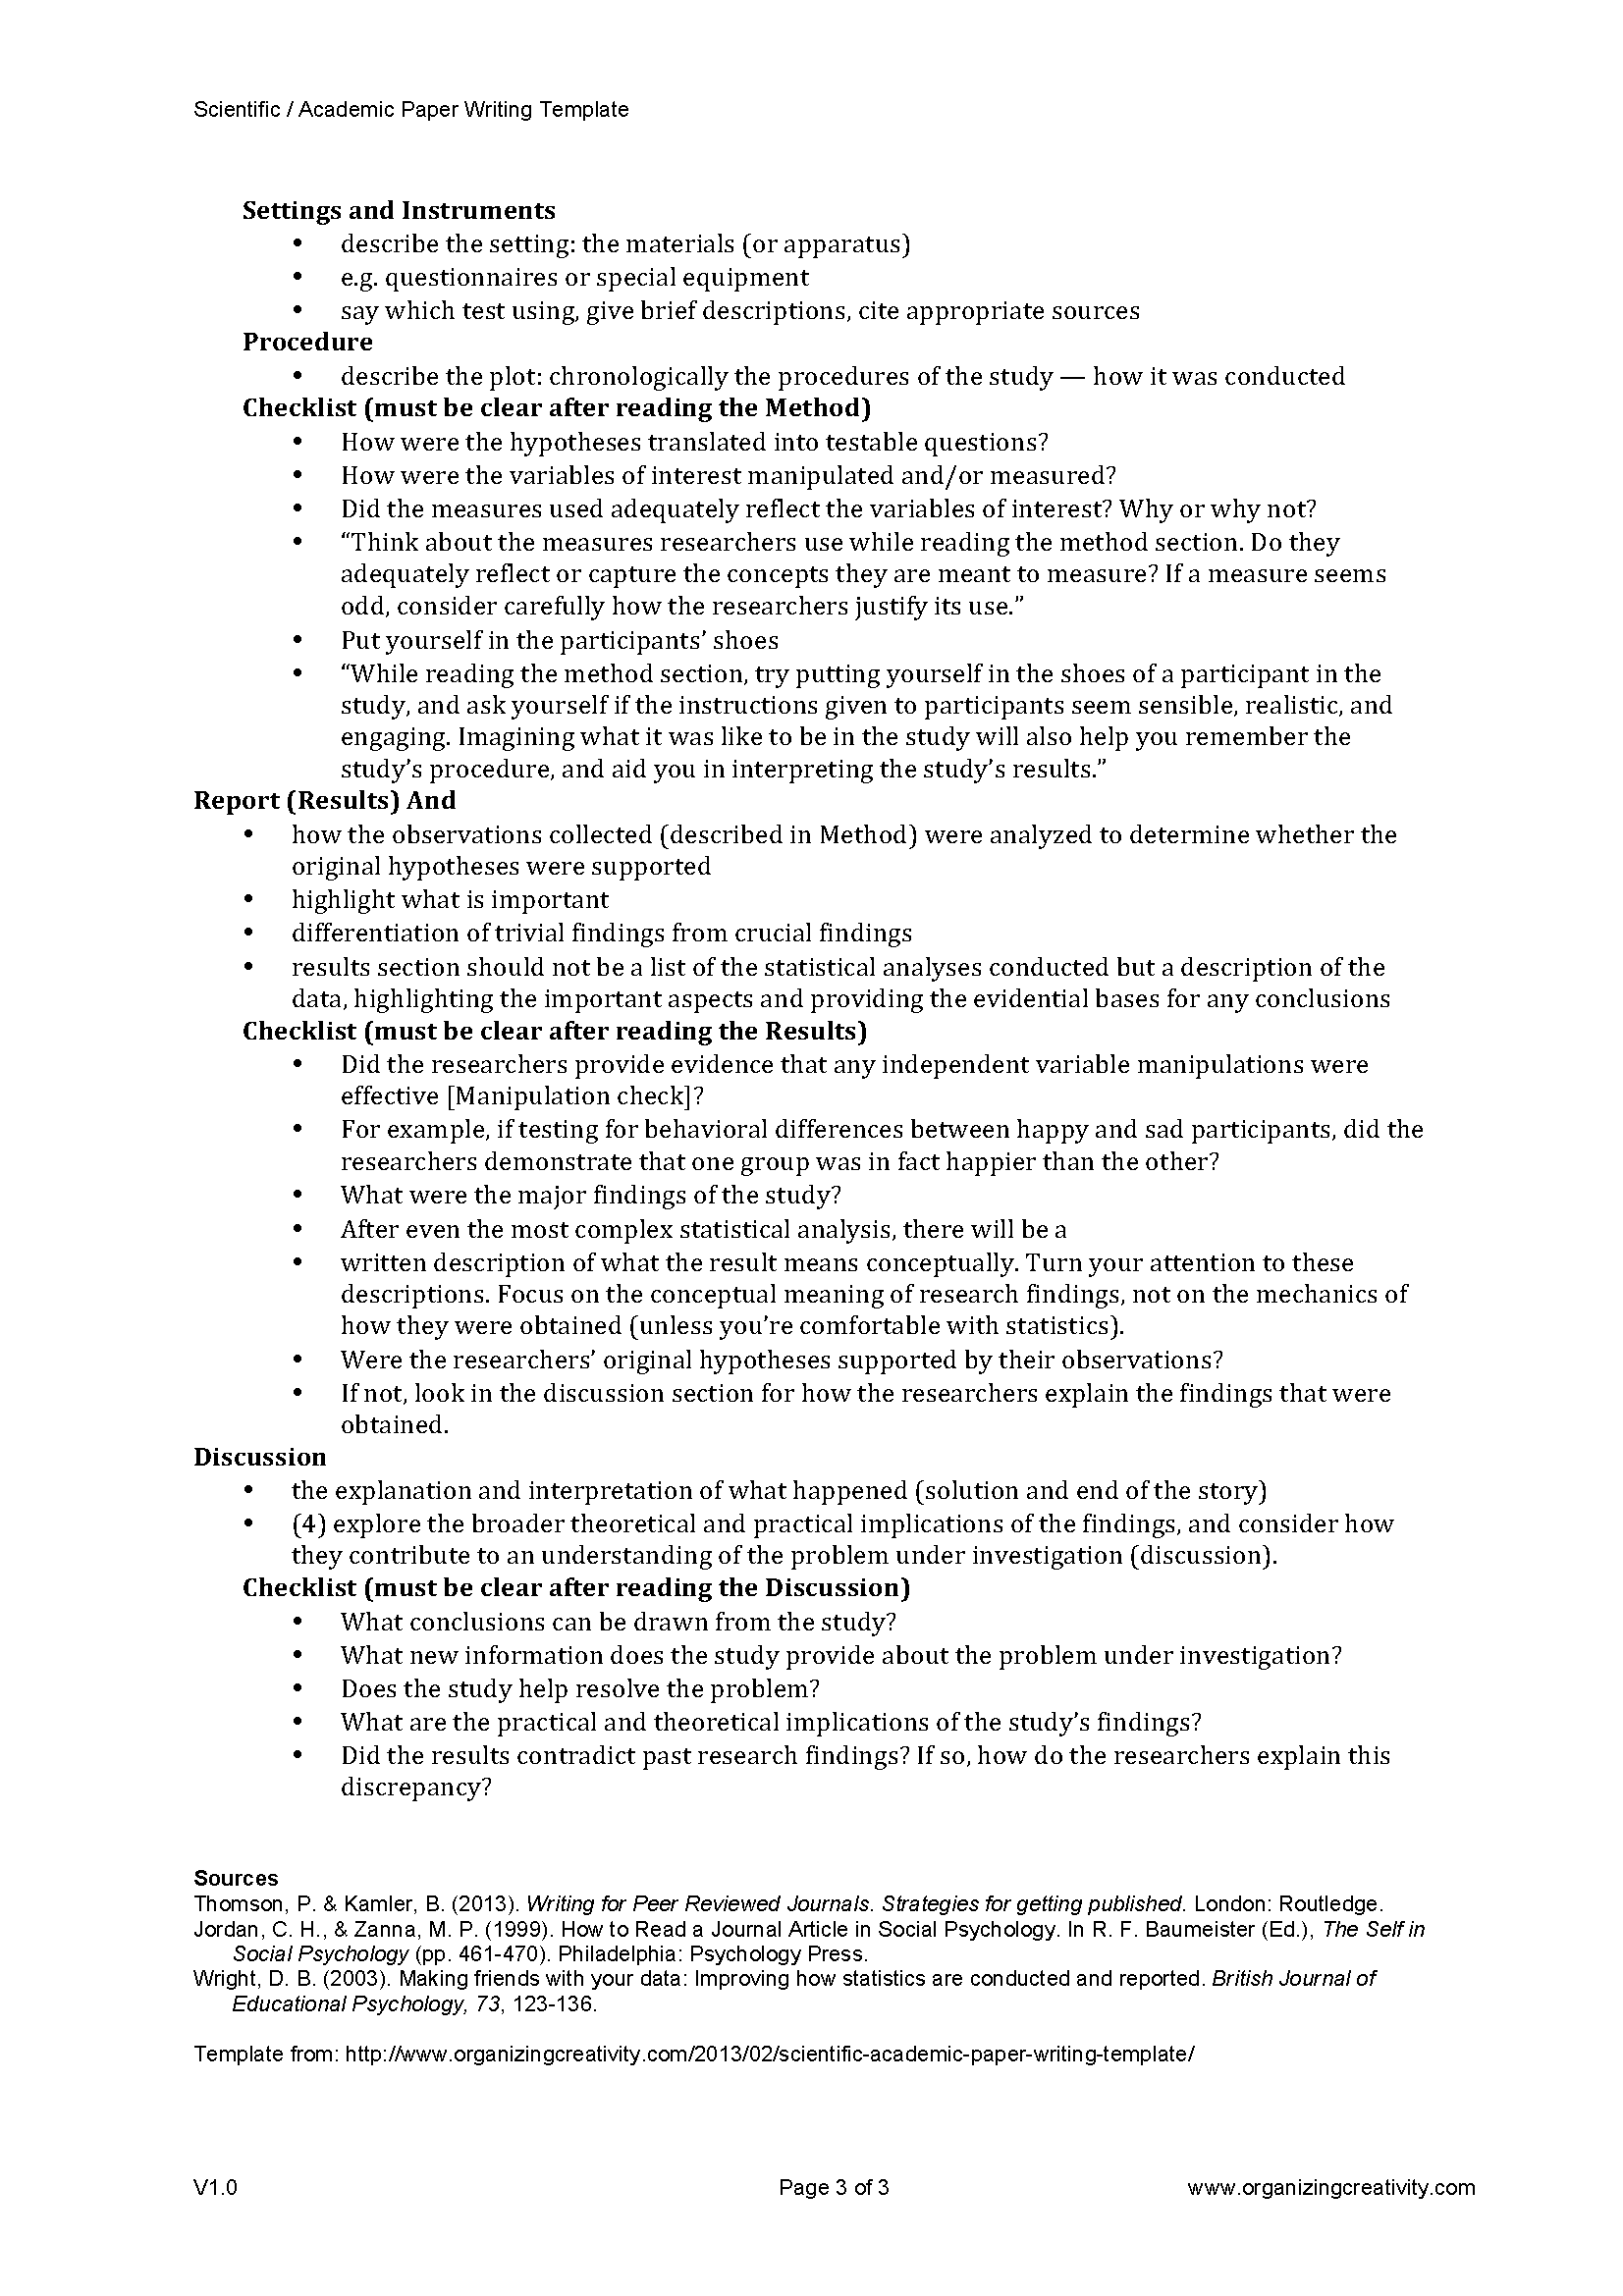 structure of an interpretive essay An assignment to interpret a work of literature can seem overwhelming figuring  out where to start, what literary elements to analyze and what to interpret.